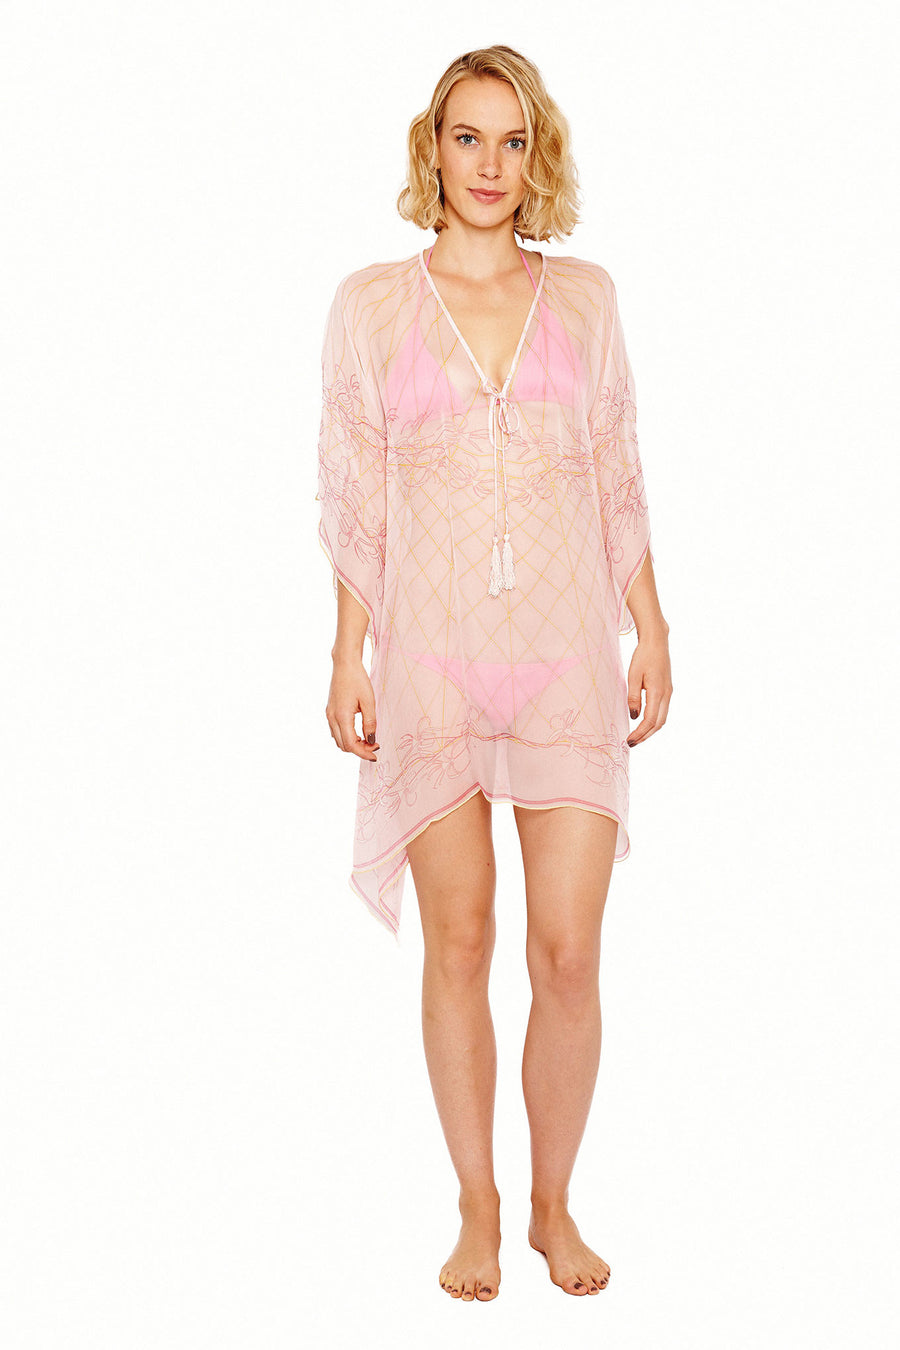 Lotty B Short Kaftan in Silk Chiffon (Spiderlily Peach Pink)